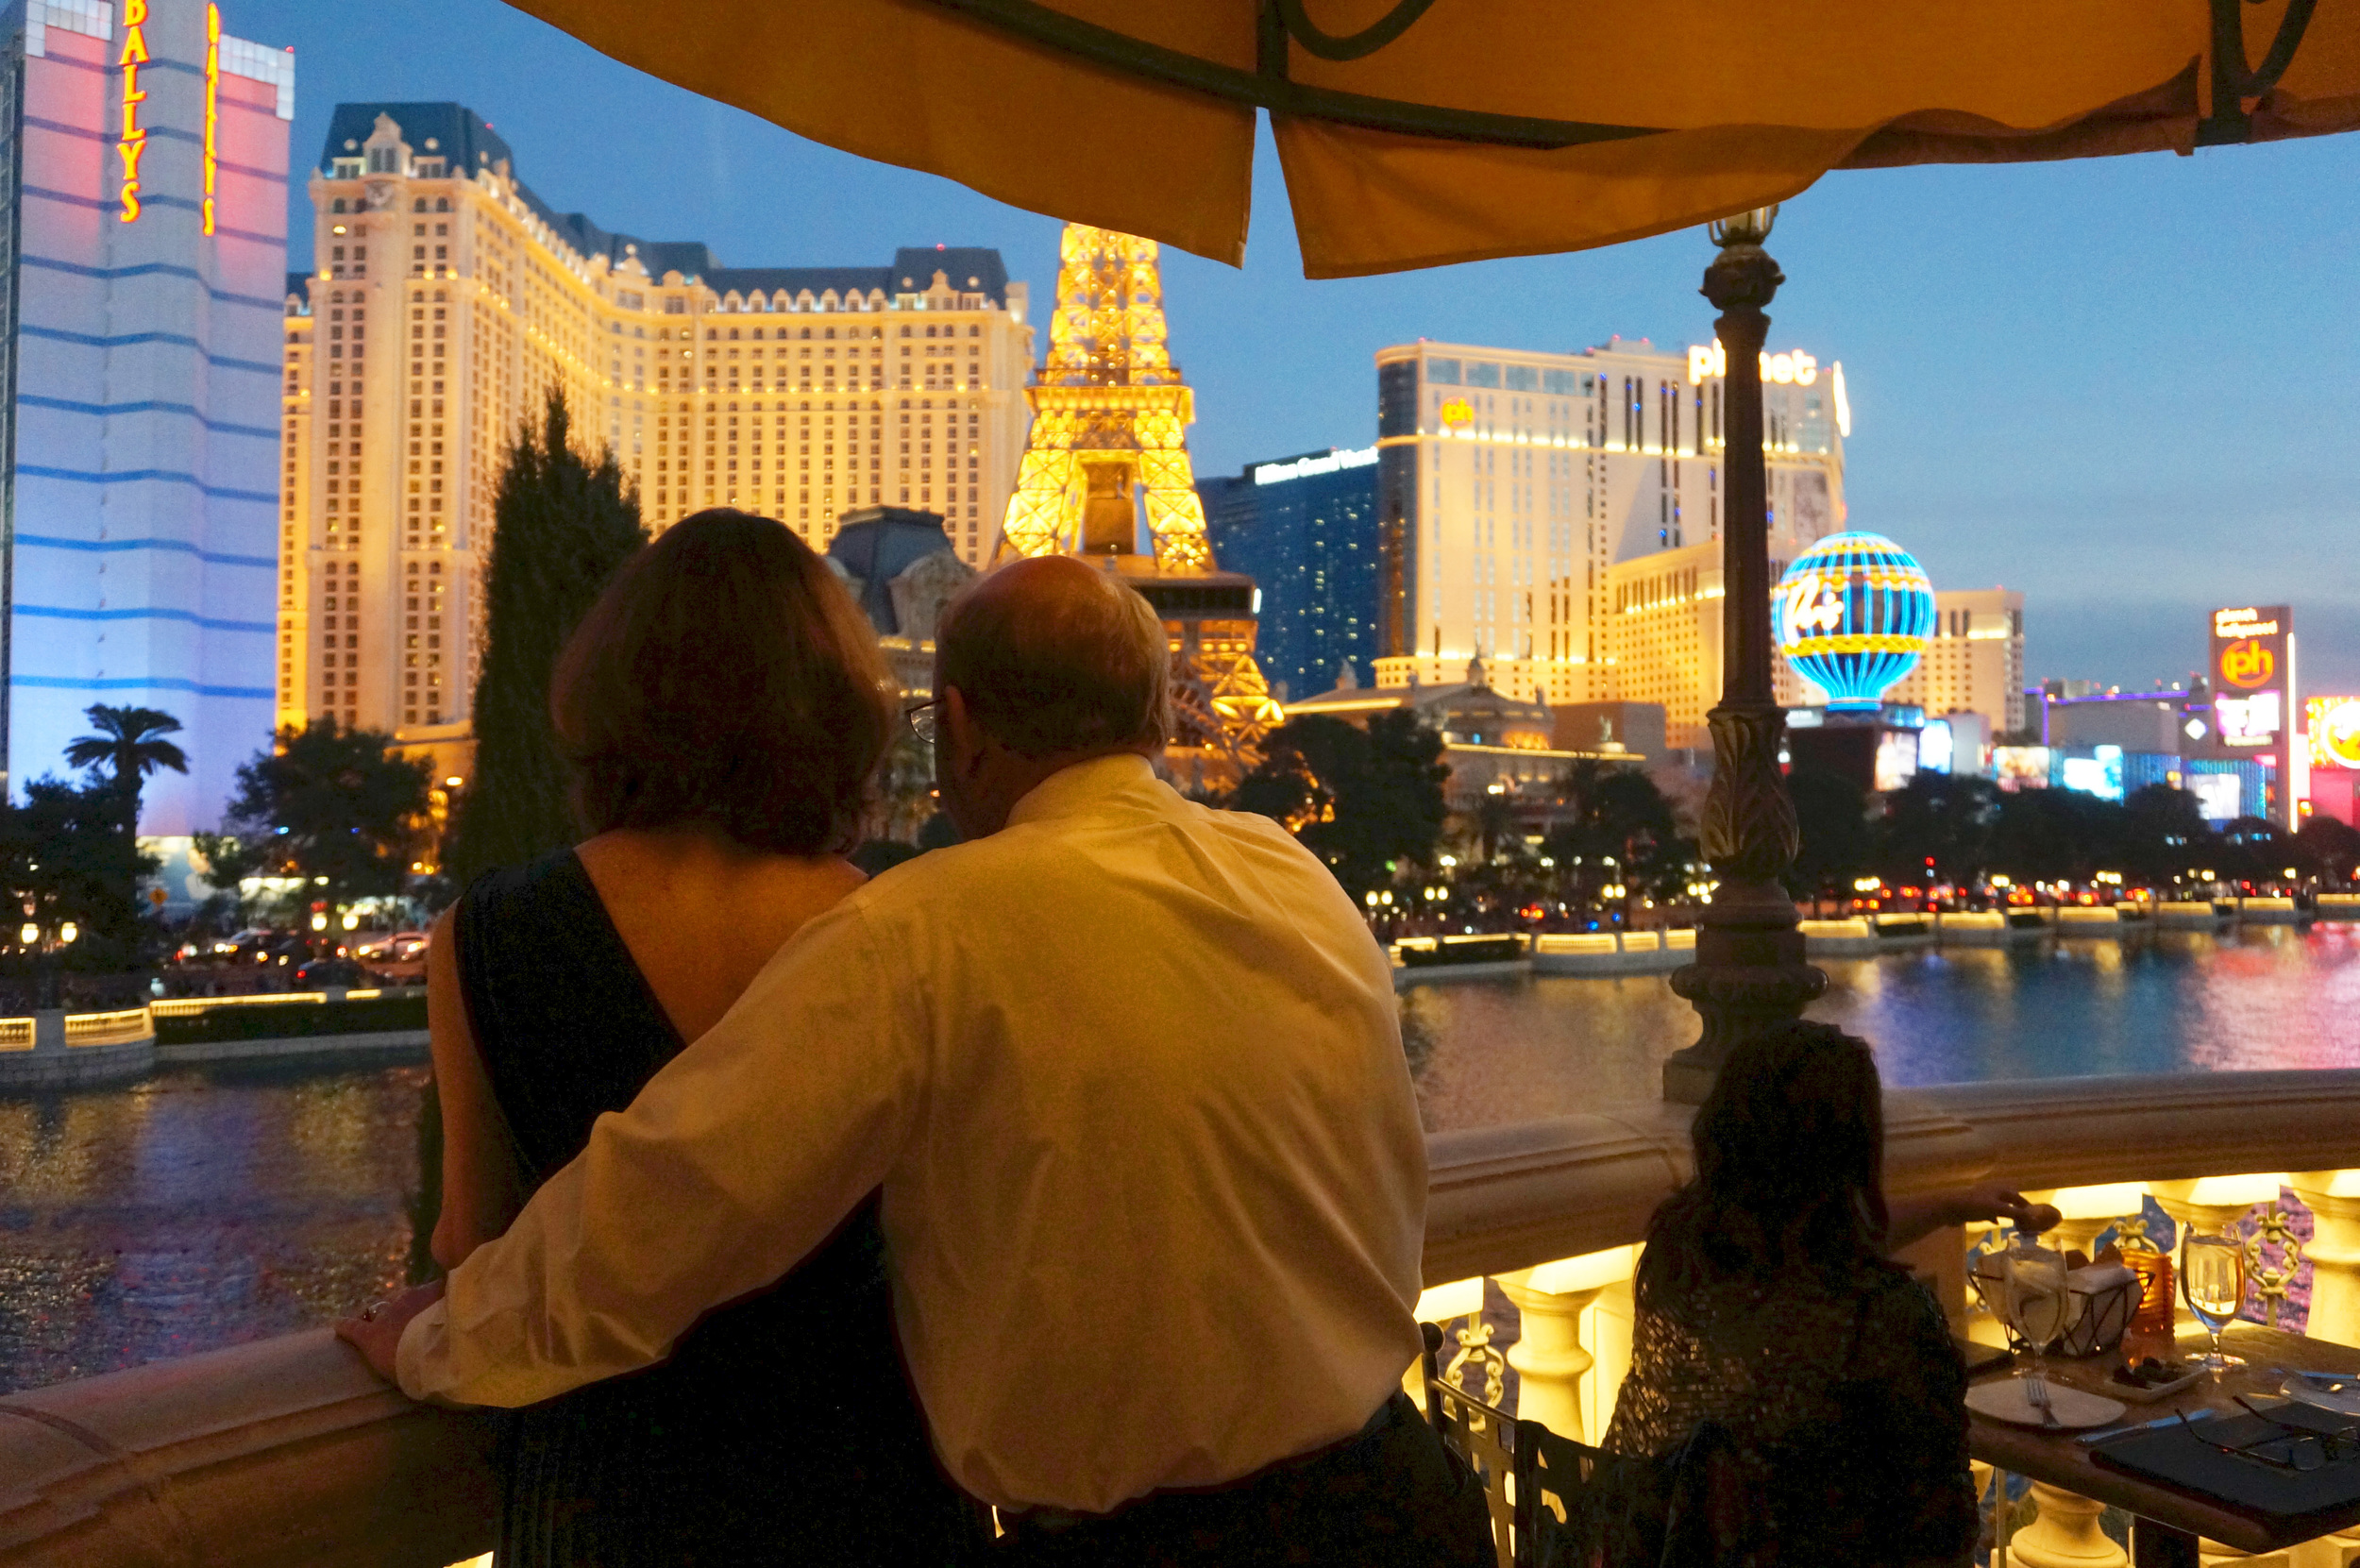 Caught a tender moment between my parents as they watched the Bellagio fountains during dinner.